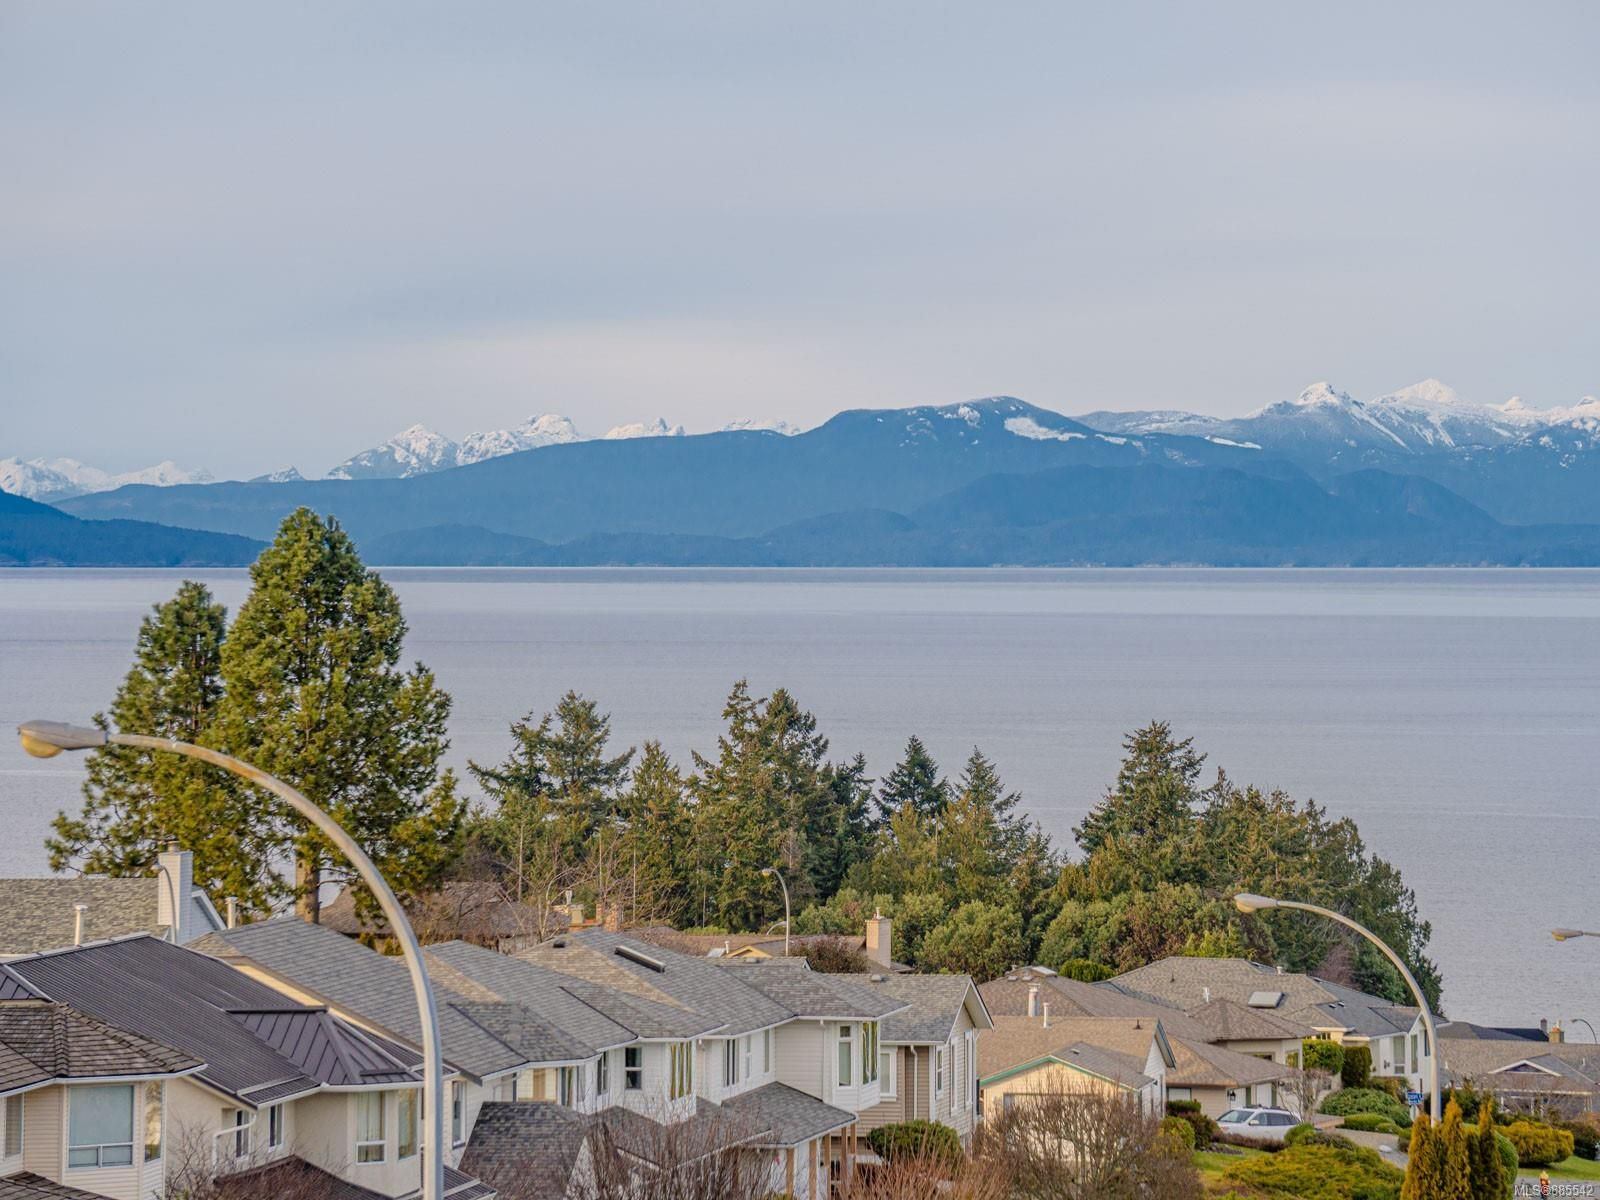 Photo 58: Photos: 6278 Invermere Rd in : Na North Nanaimo House for sale (Nanaimo)  : MLS®# 885542